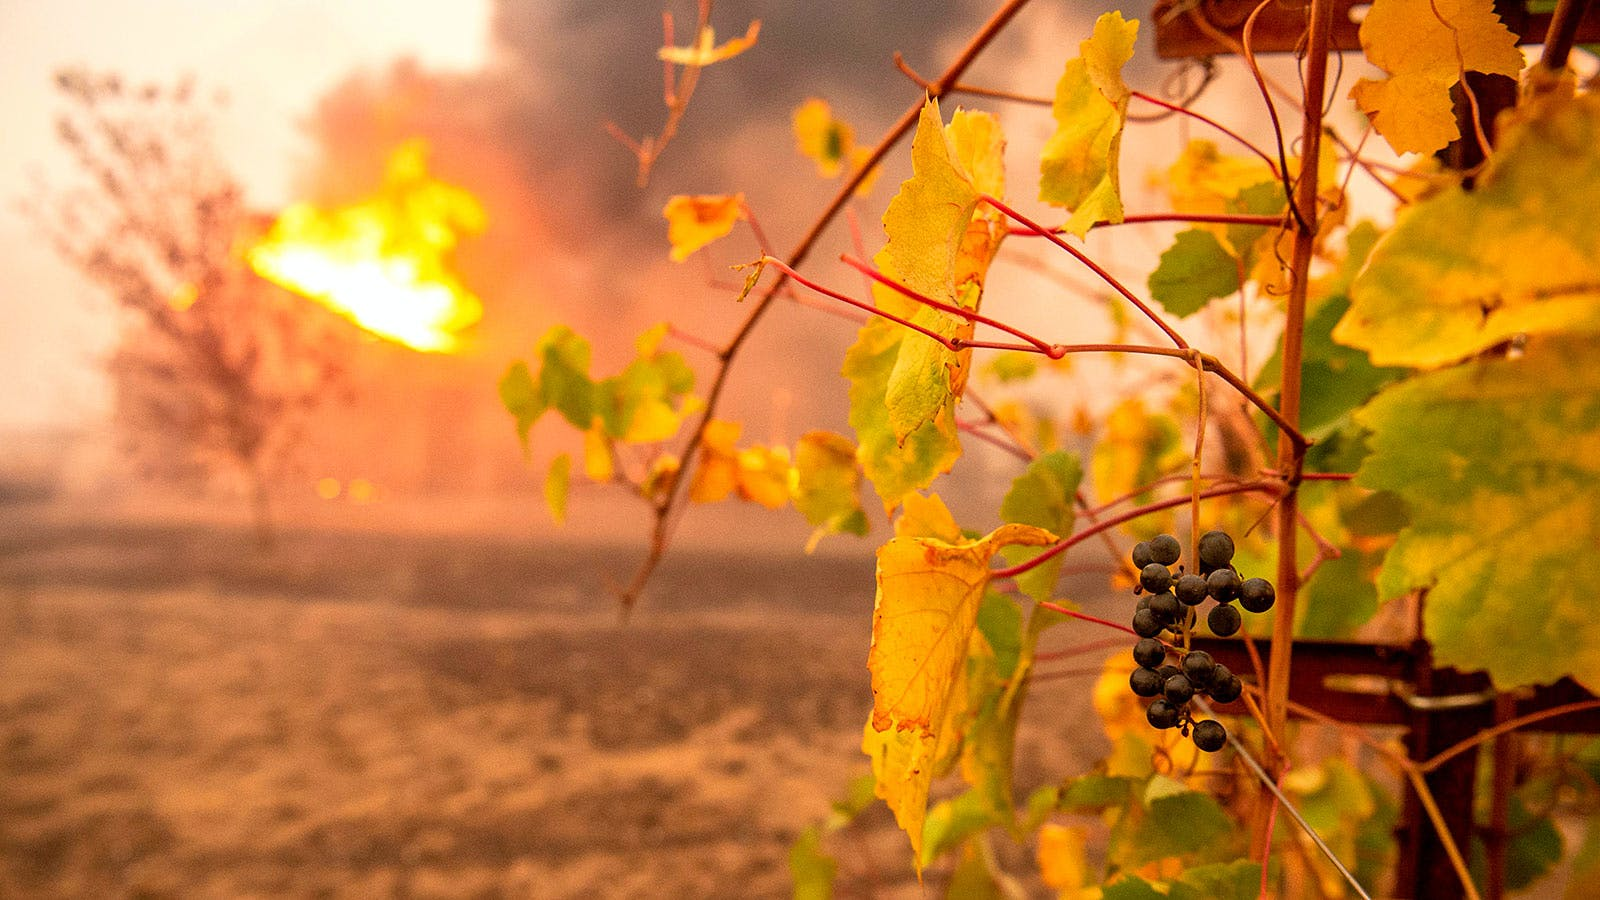 Can Grapes Be Protected from Wildfire Smoke Taint?